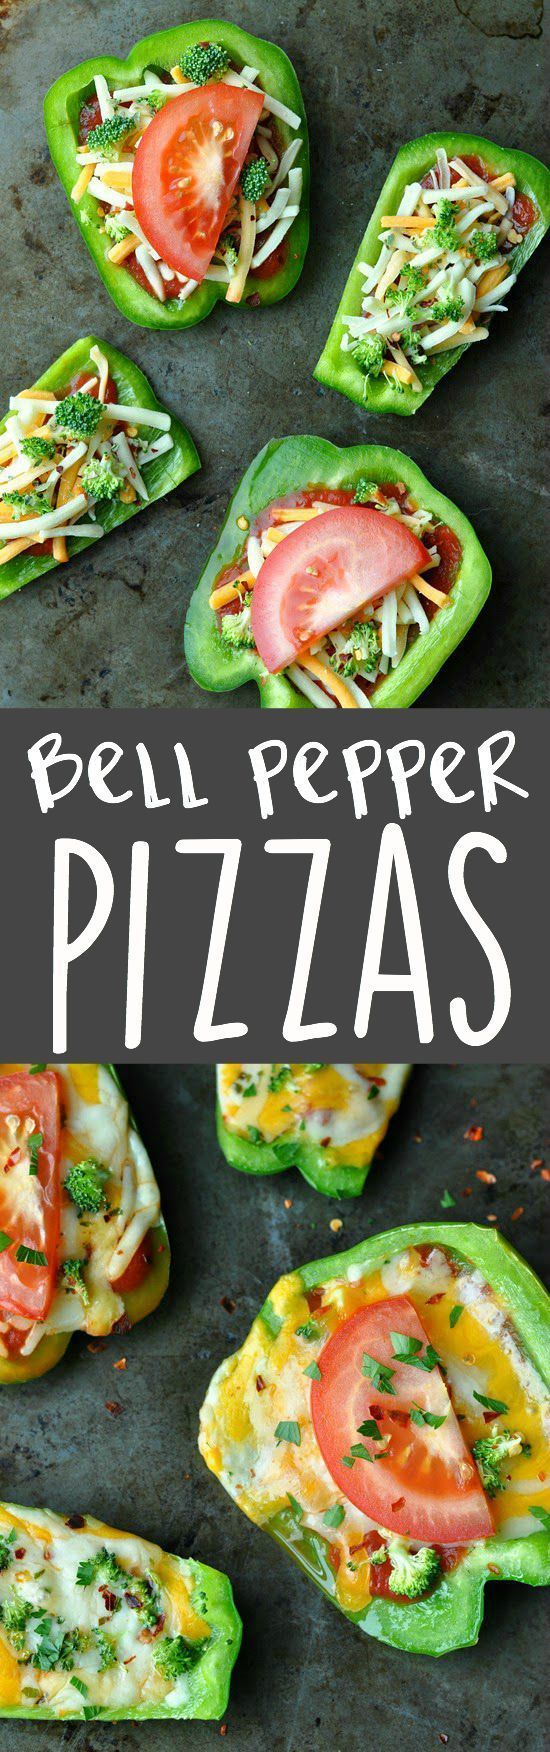 Bell Pepper Pizzas | 13 Snacks Every Lazy Girl Should Know How to Make | http://www.hercampus.com/health/food/13-snacks-every-lazy-girl-should-know-how-make